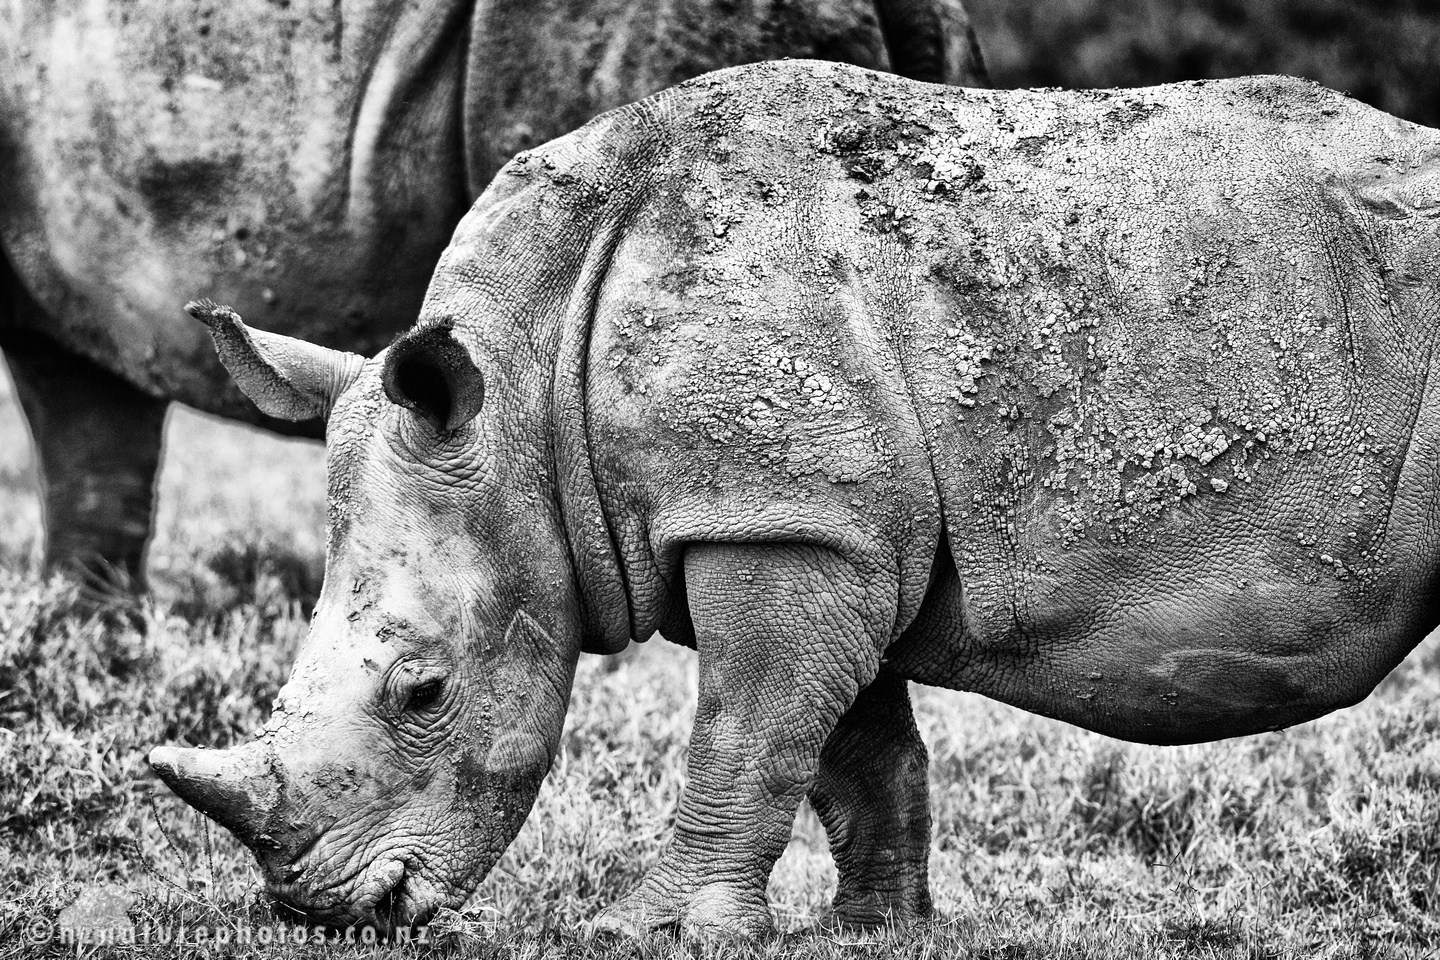 Featured image: Black Rhino Photo